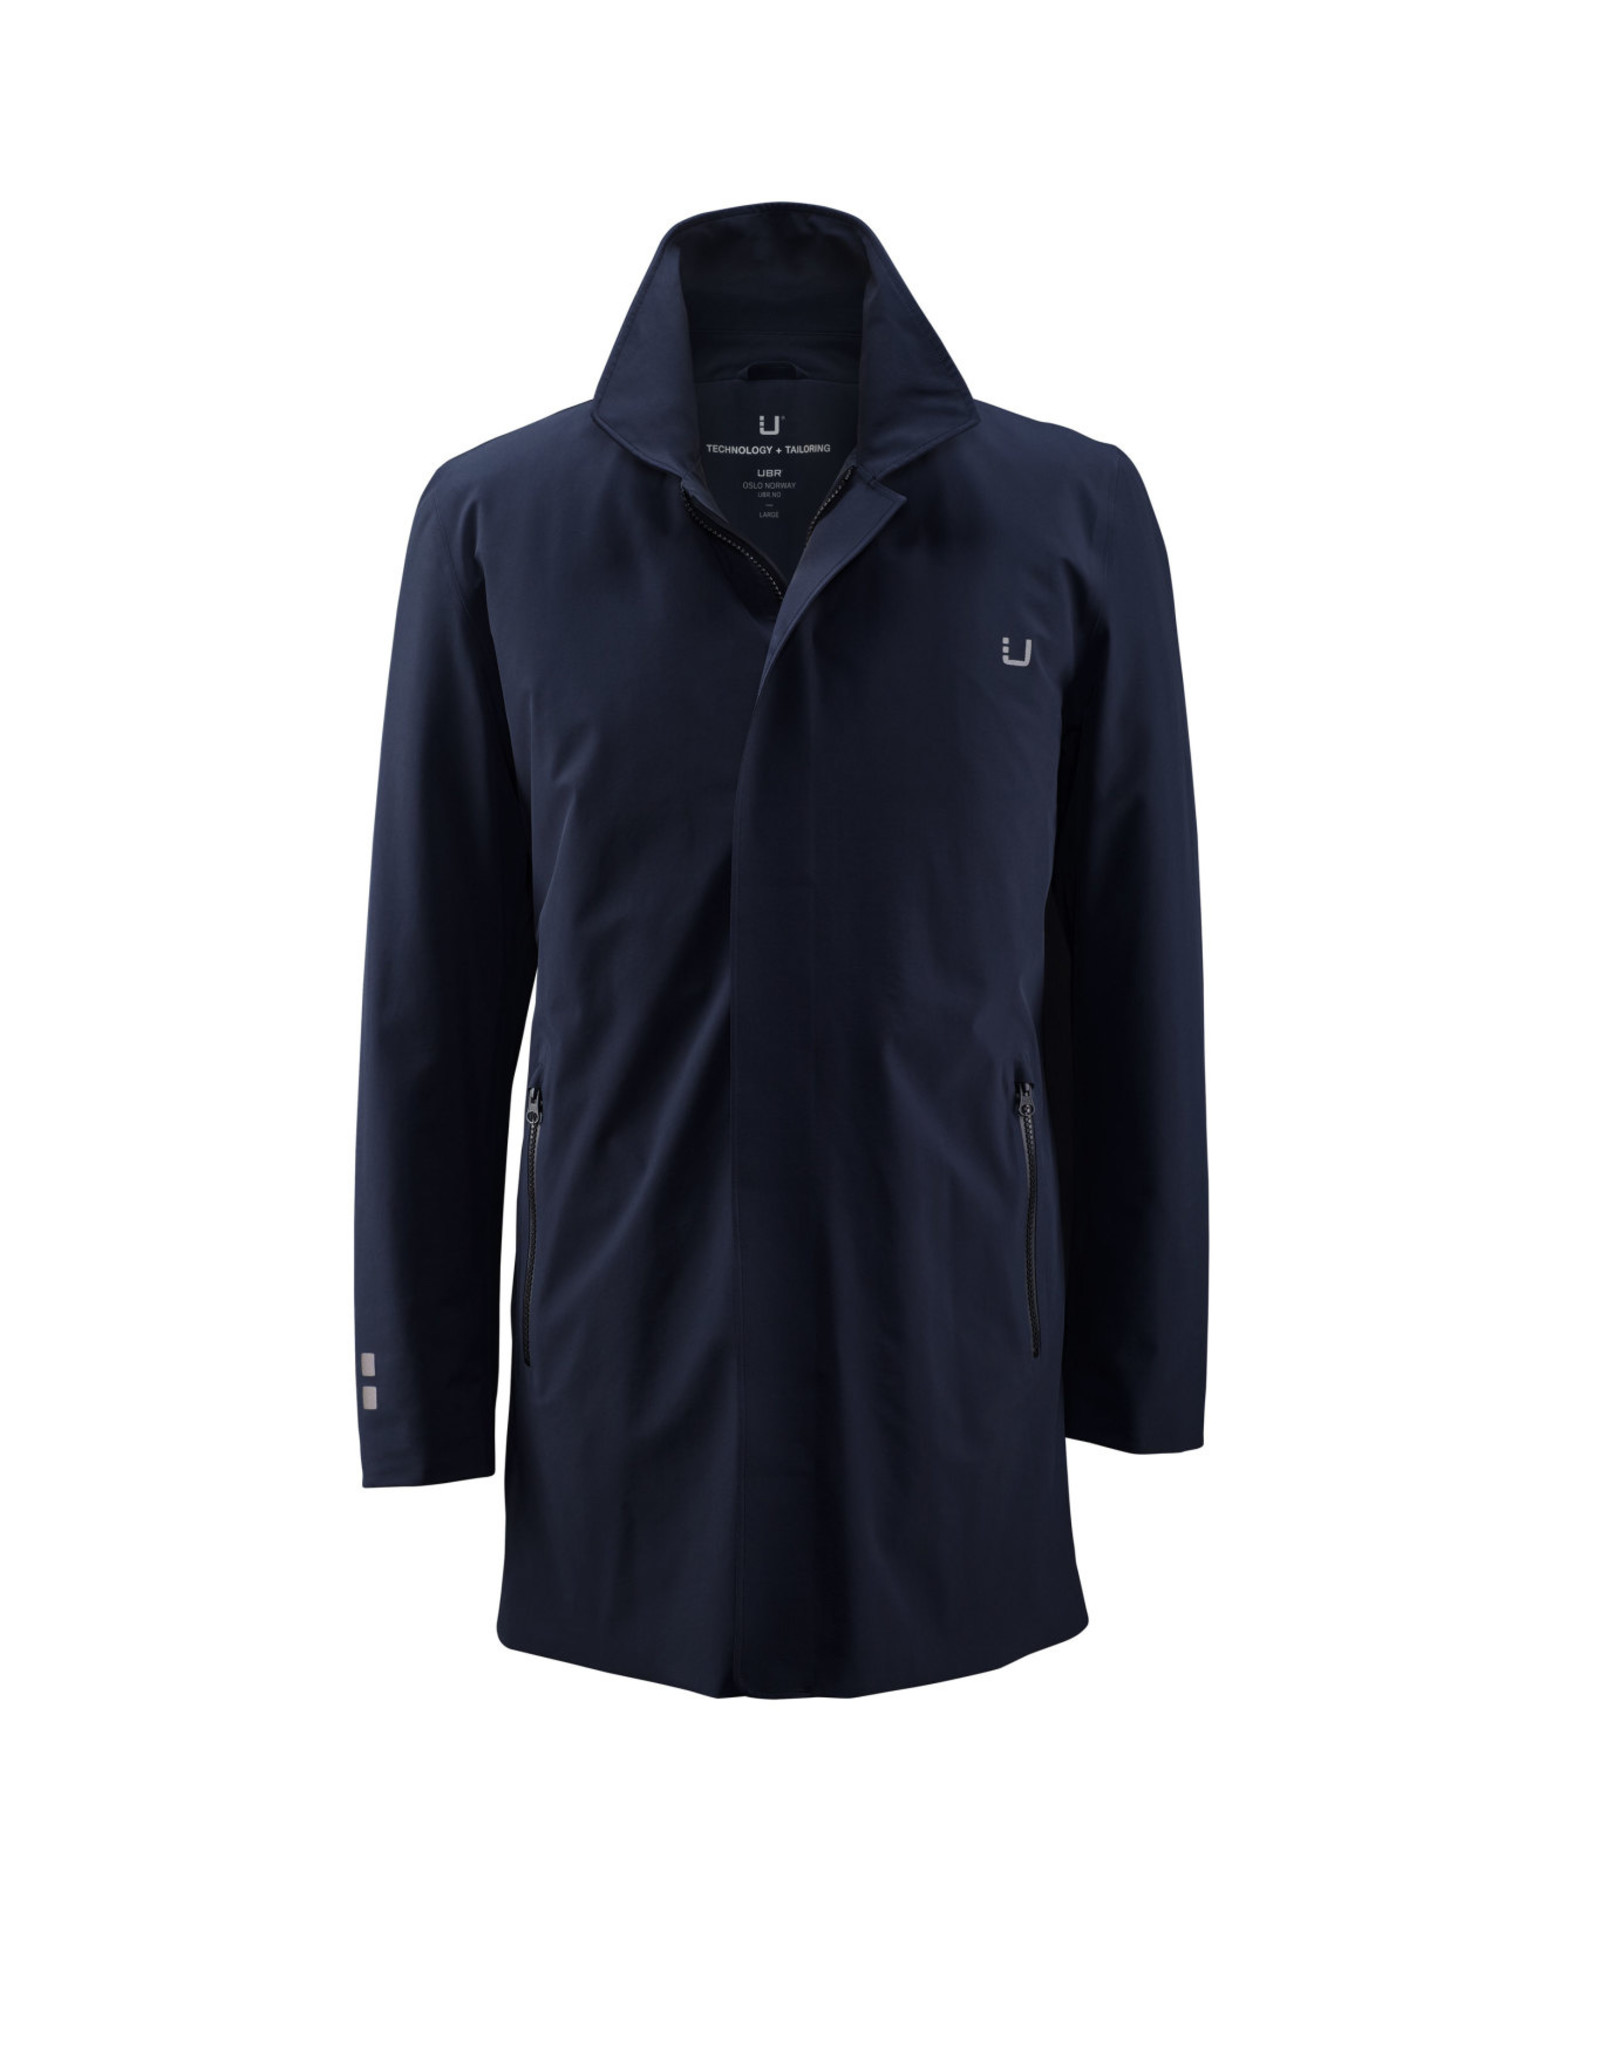 UBR UBR regenjas Regulator coat navy